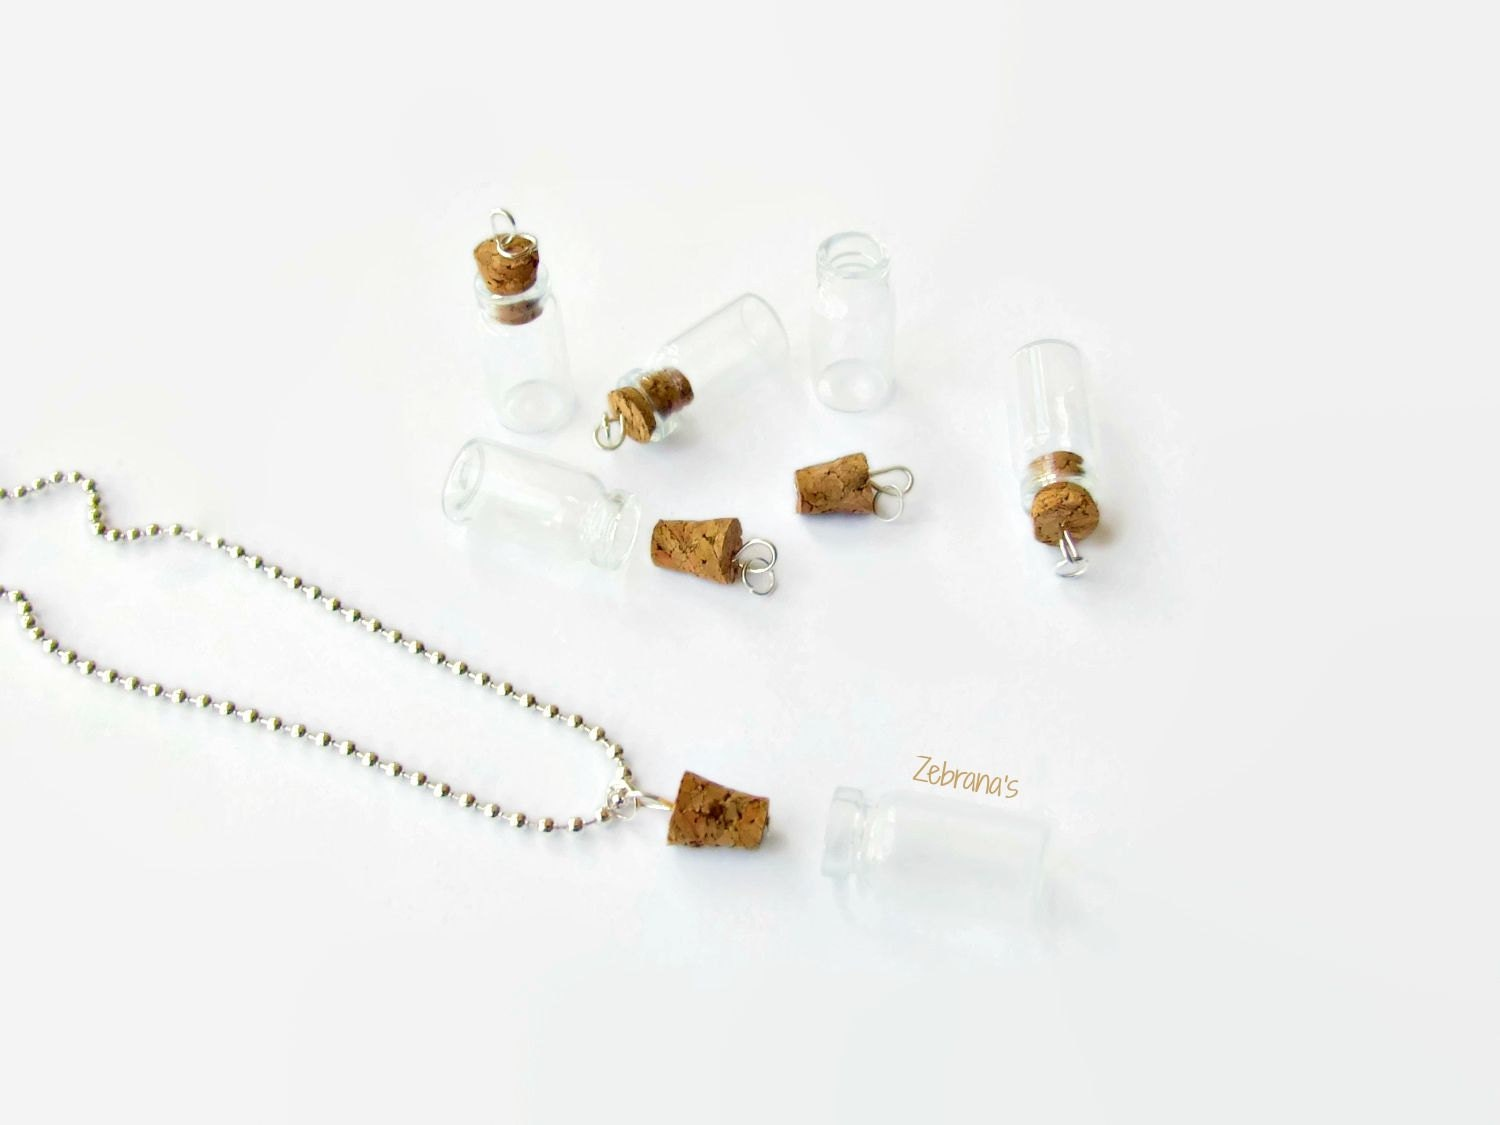 small empty vial necklace do it yourself set diy kit necklace